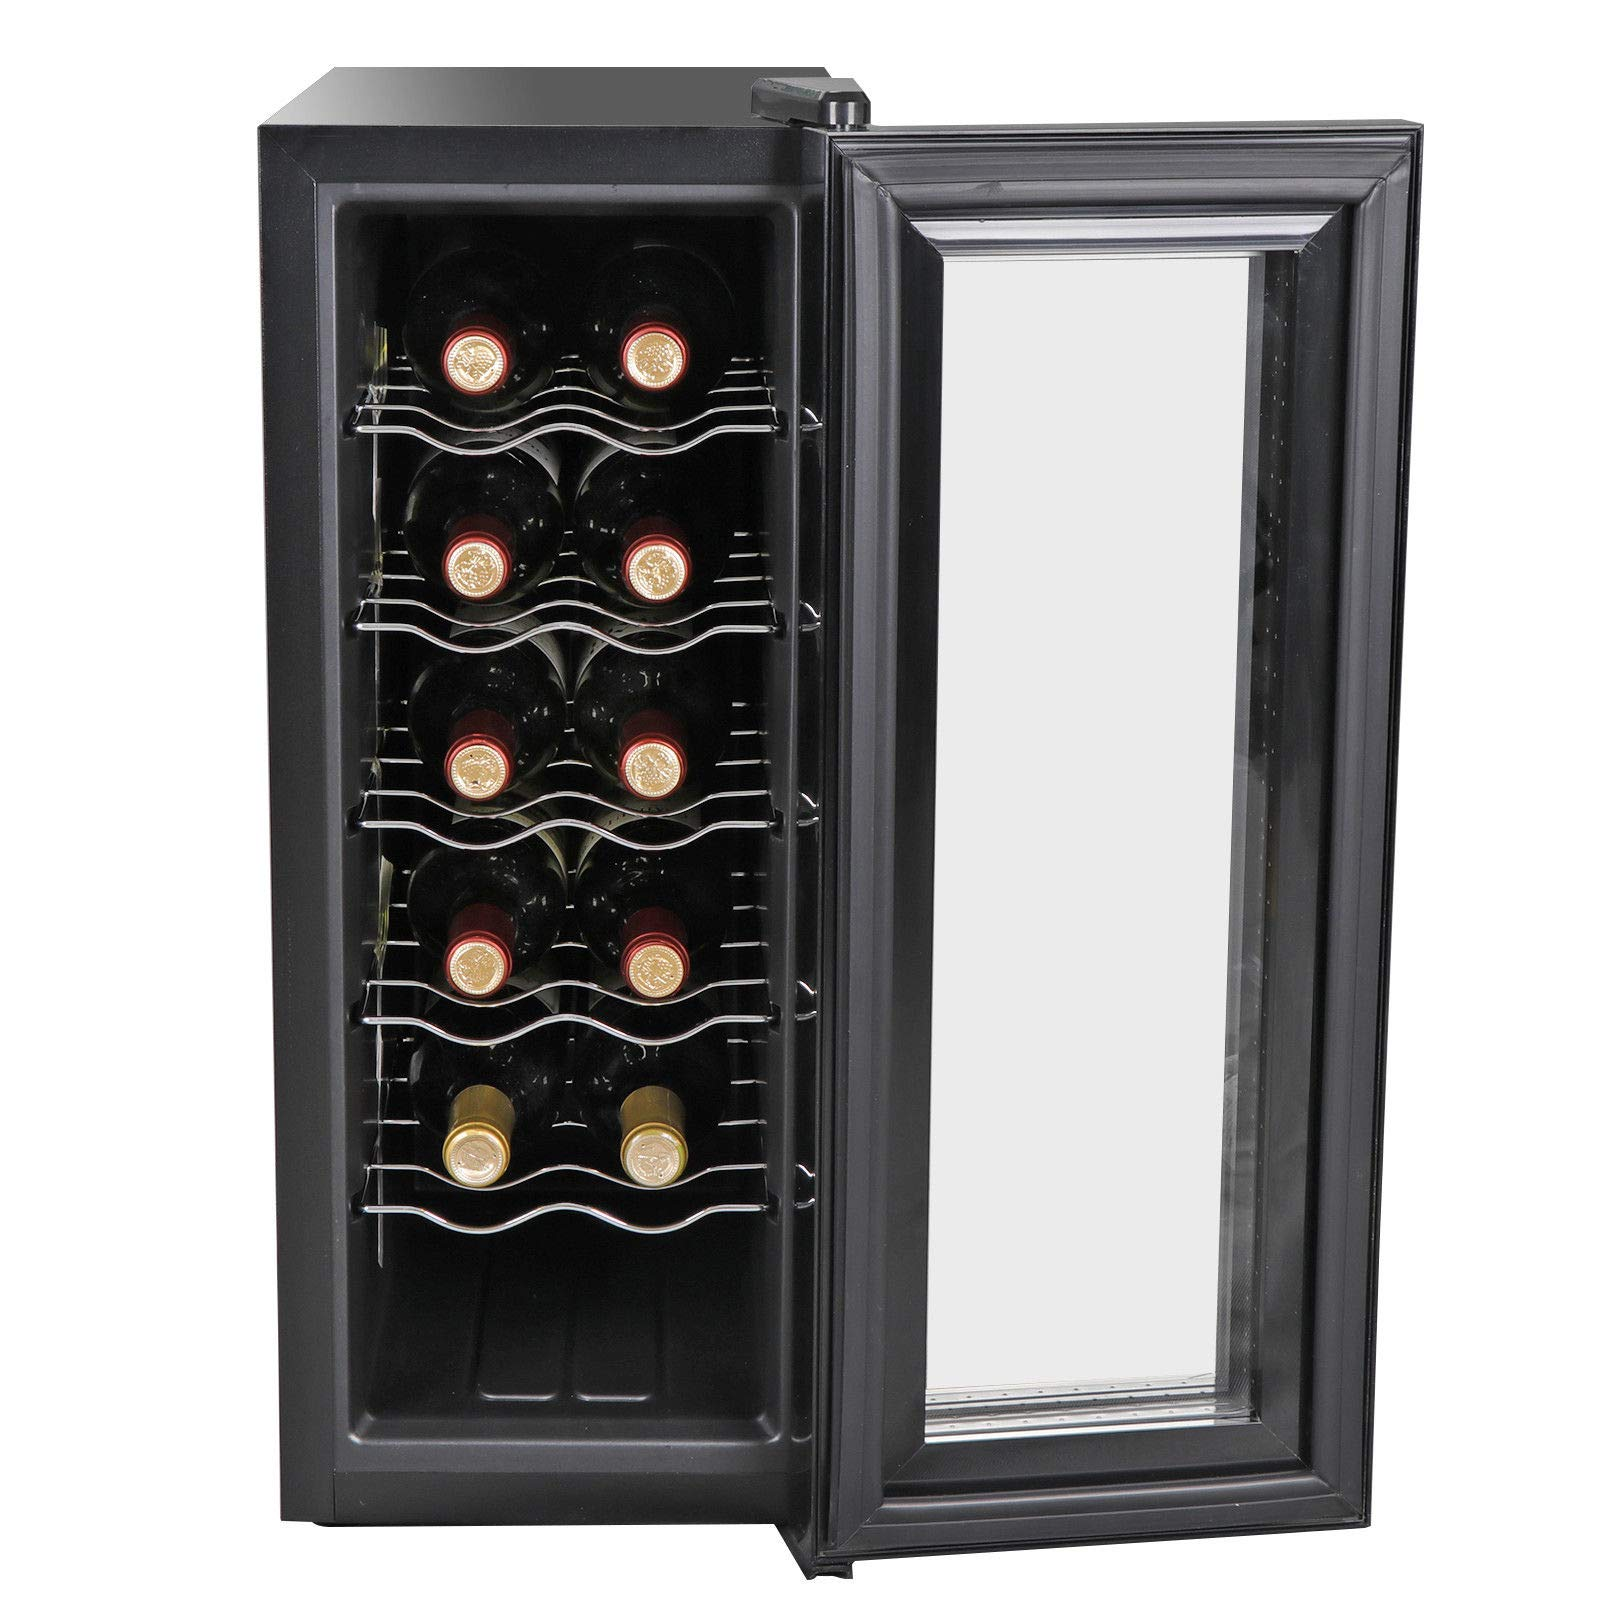 AK Energy 12 Bottles Wine Cooler Refrigerator Air-tight Seal Quiet 50-64 F Temperature Control Freestanding by AK Energy (Image #1)